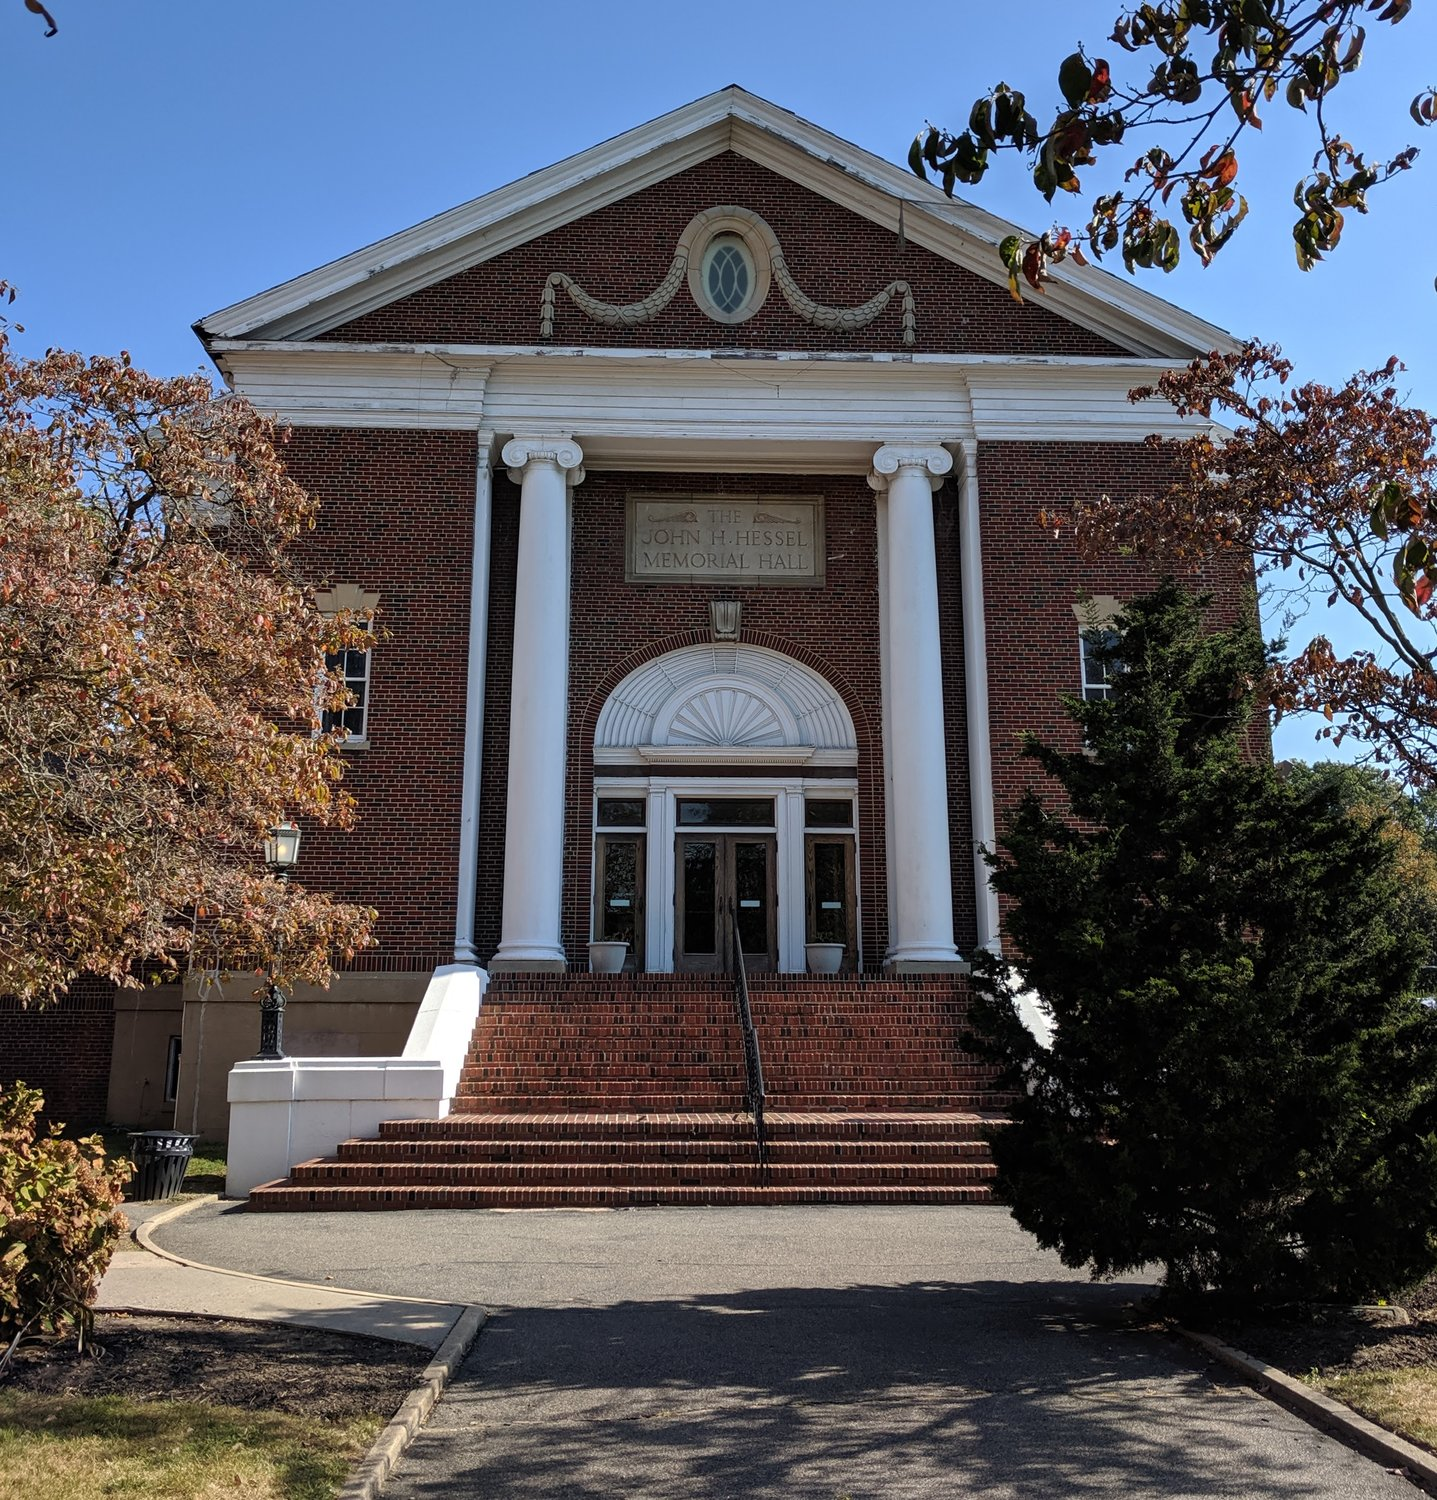 LWA plans to rename Hessel Hall the Barbra Barth Feldman Performing Arts Center in honor of the former head of school.